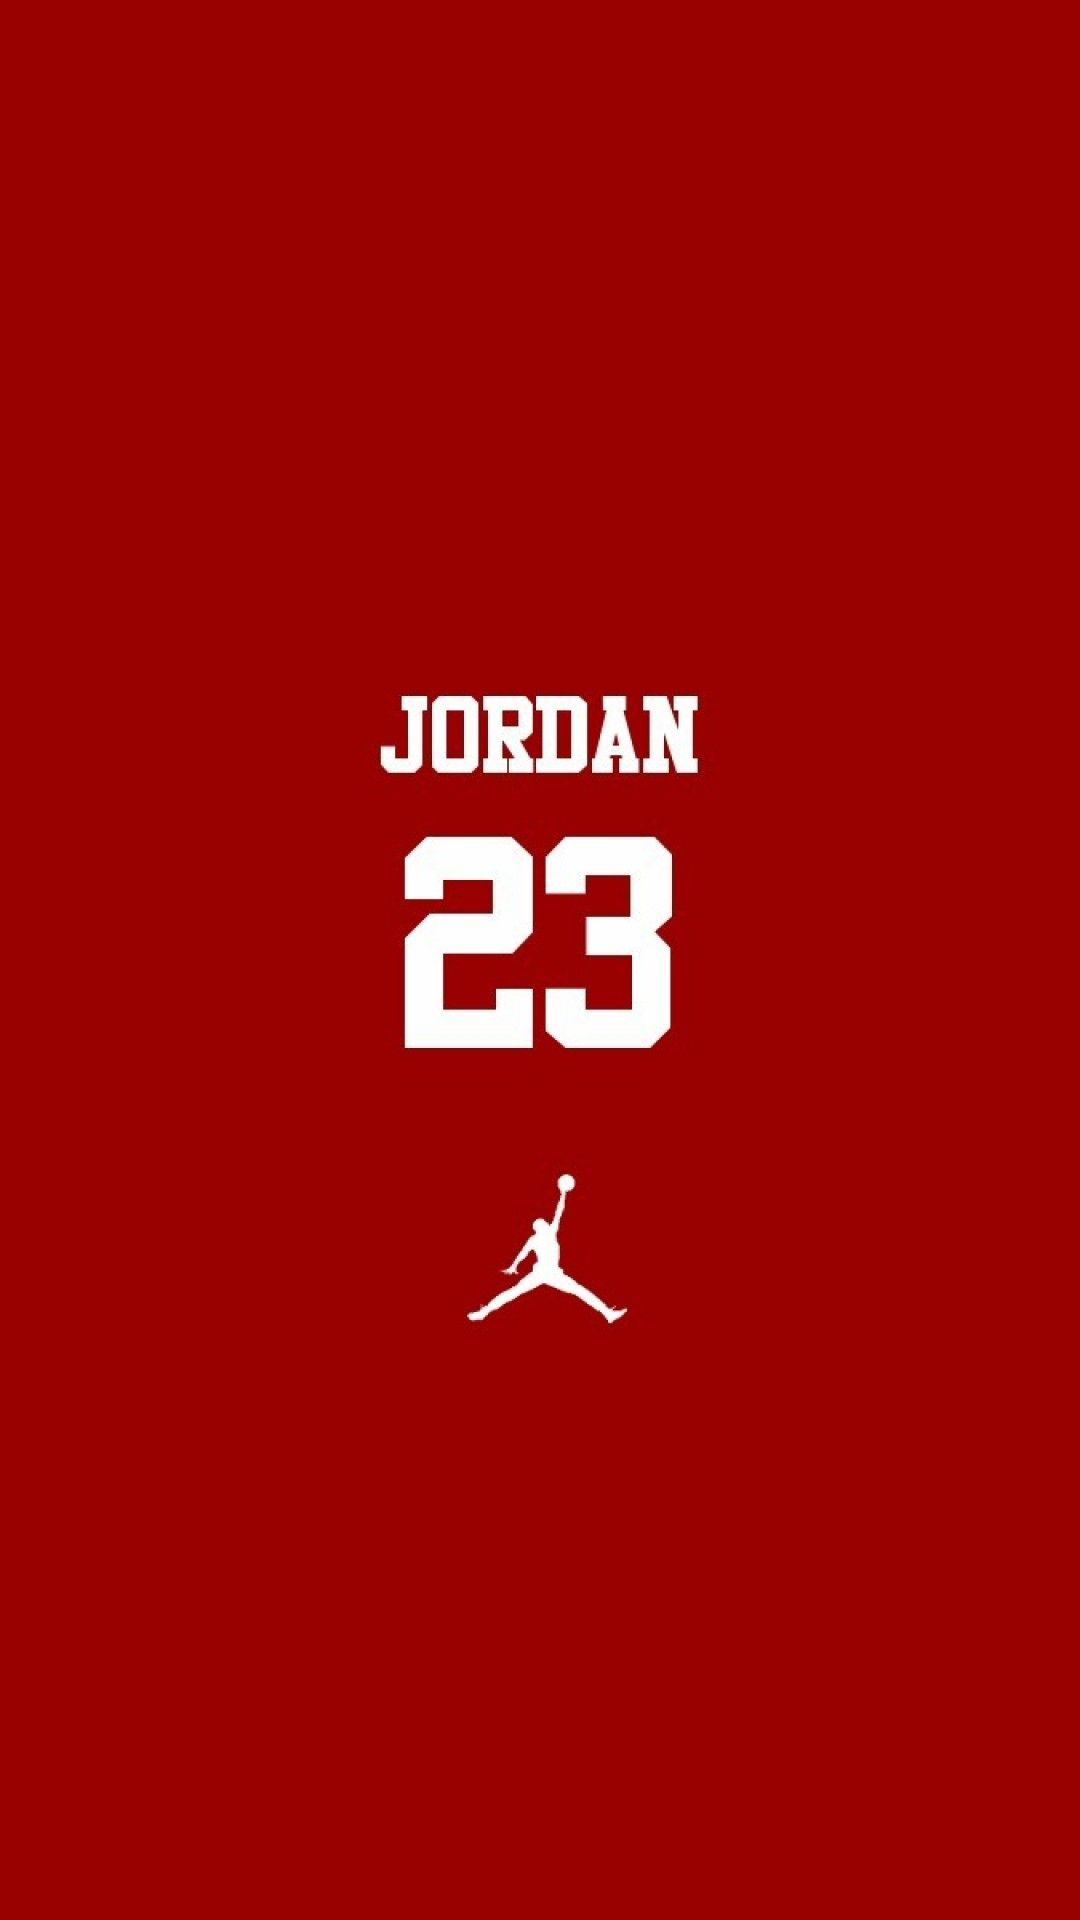 Jordan Iphone Wallpapers Top Free Jordan Iphone Backgrounds Wallpaperaccess